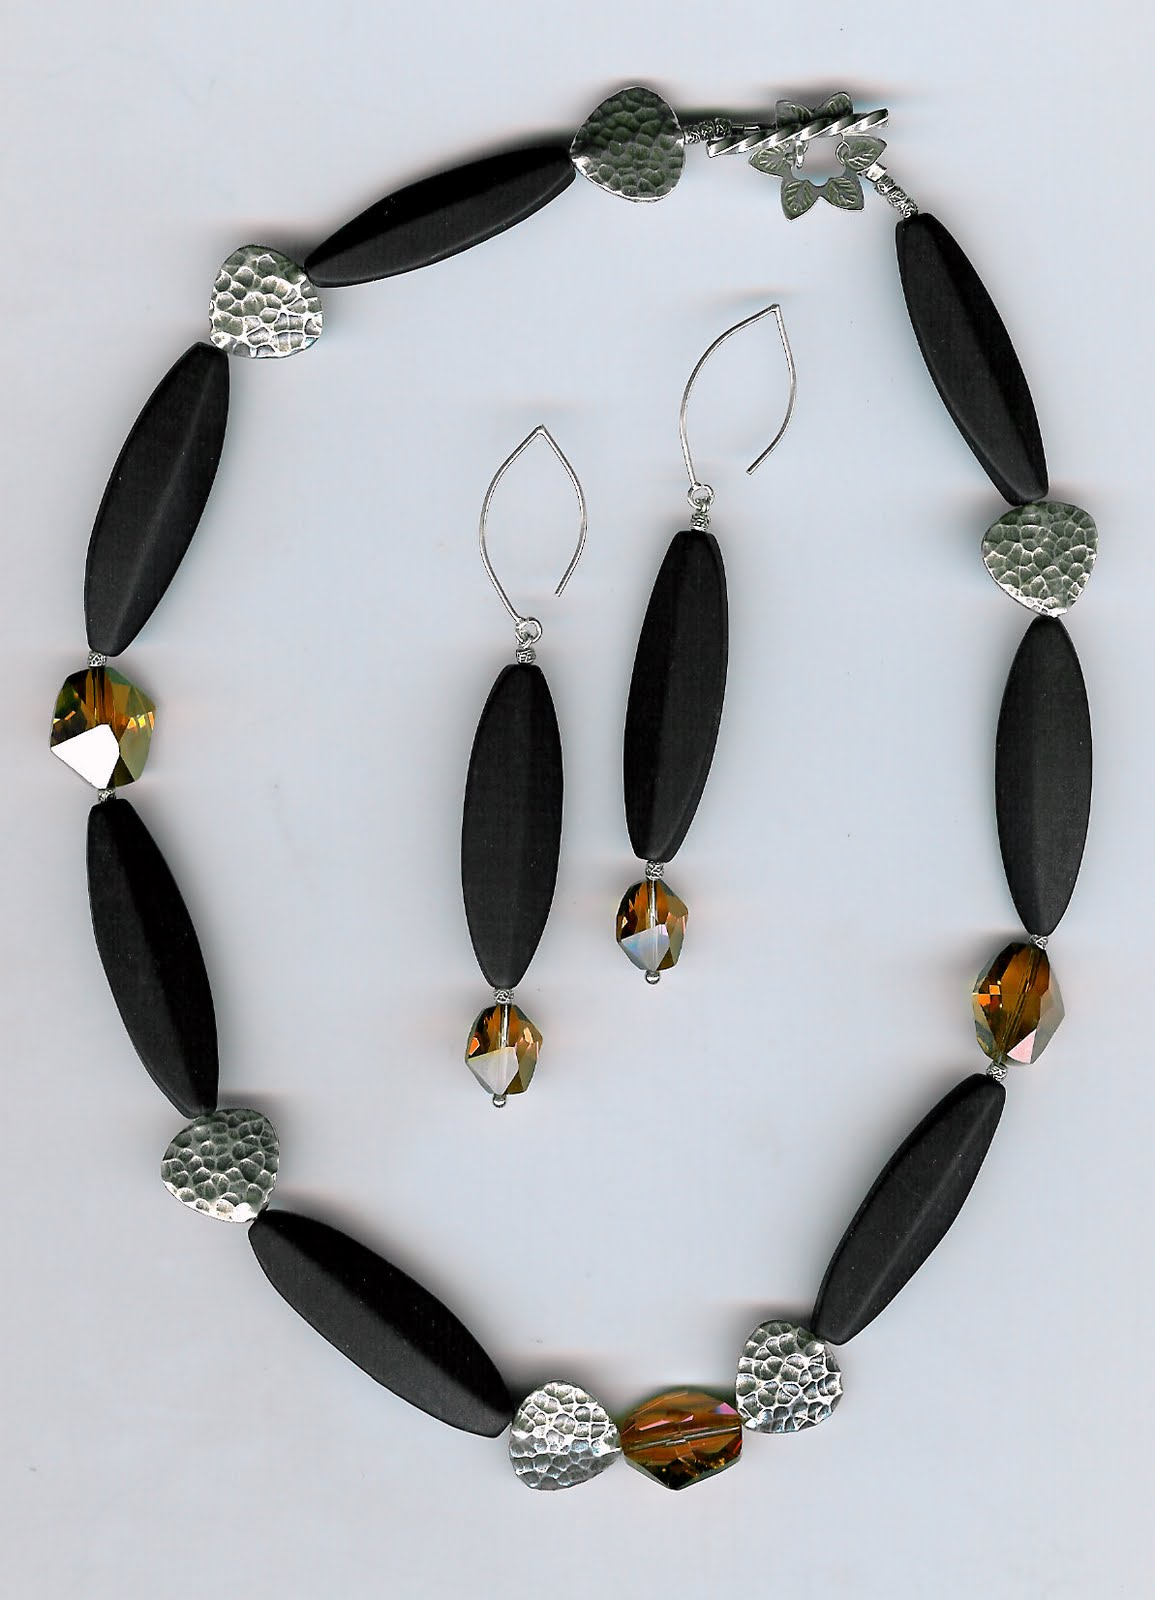 185. Matte Onyx, Crystals with Karen Hill Thai Sterling Silver + Earrings